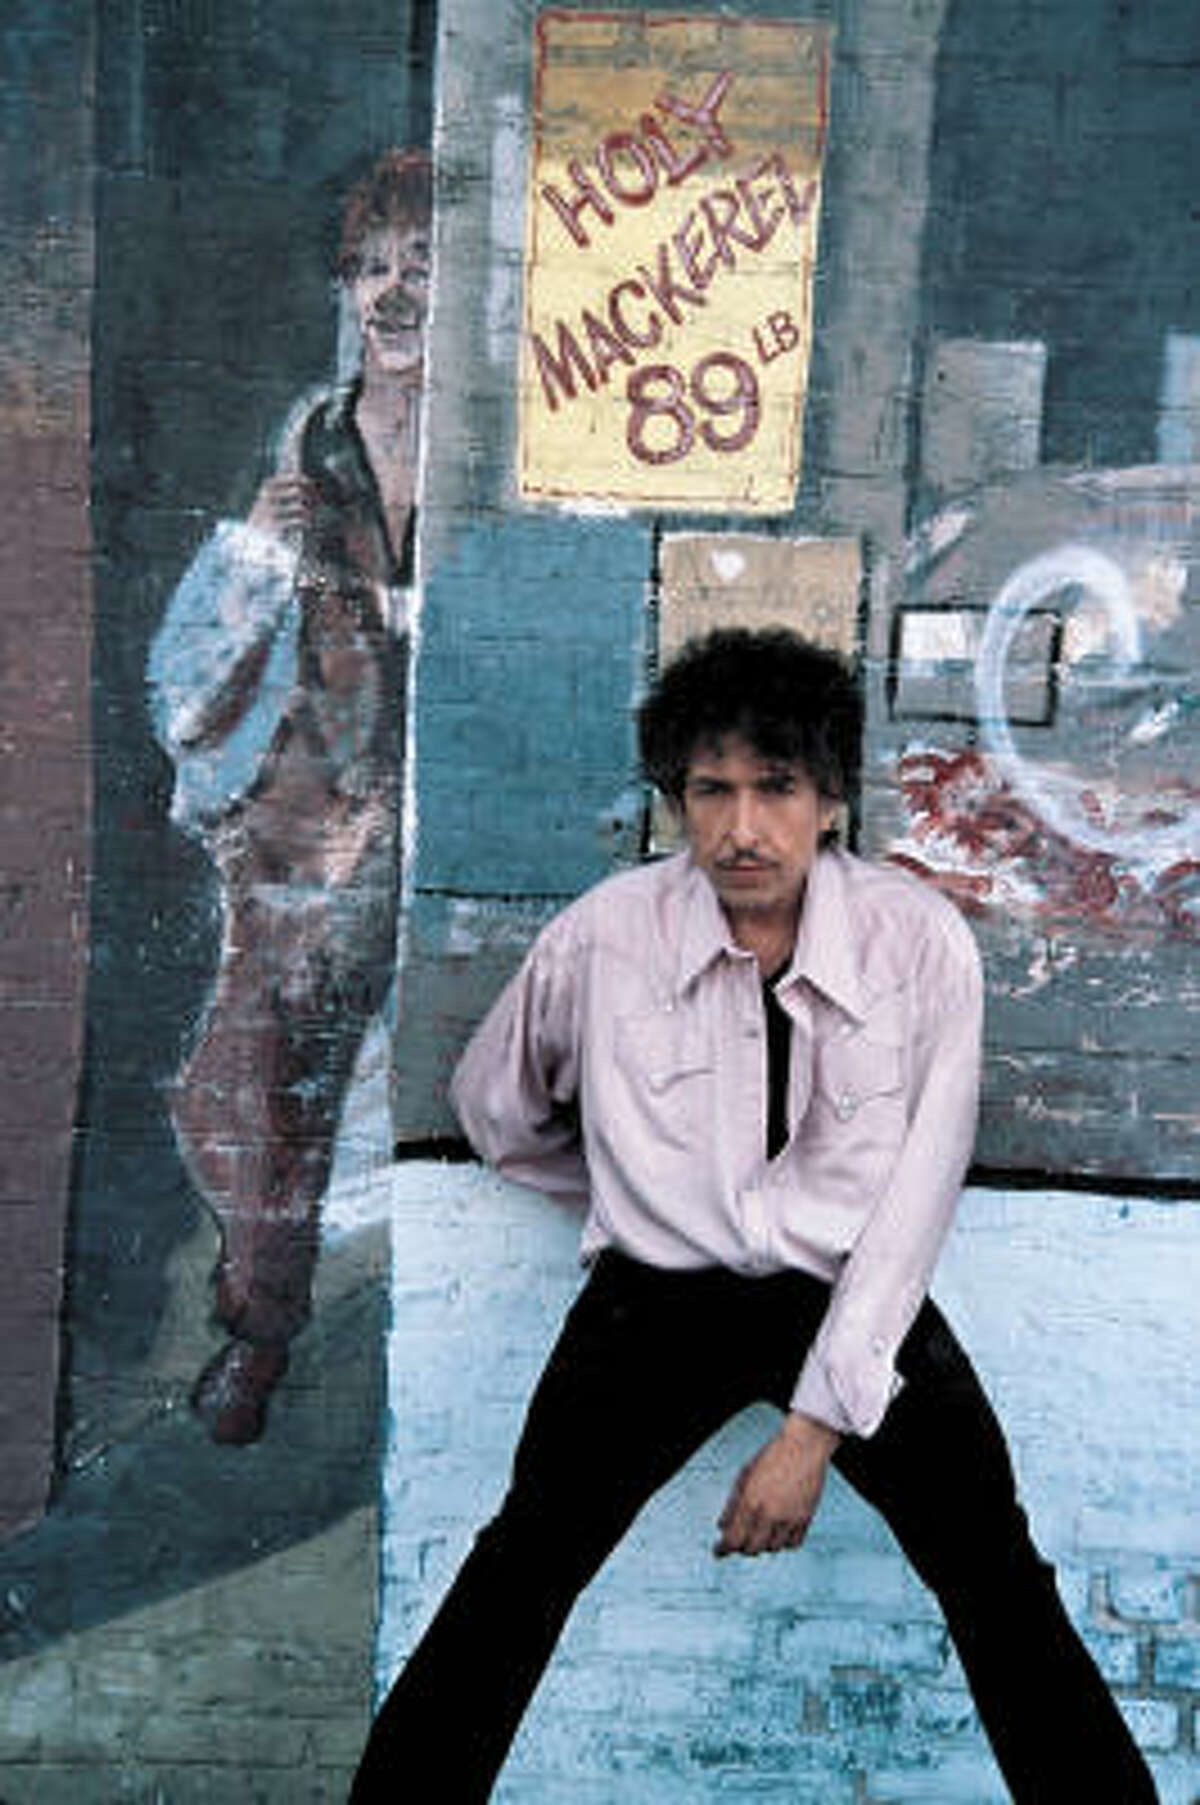 Bob Dylan's album covers have provided some iconic images over the years, whether it's a photo of the singer or art he helps choose.